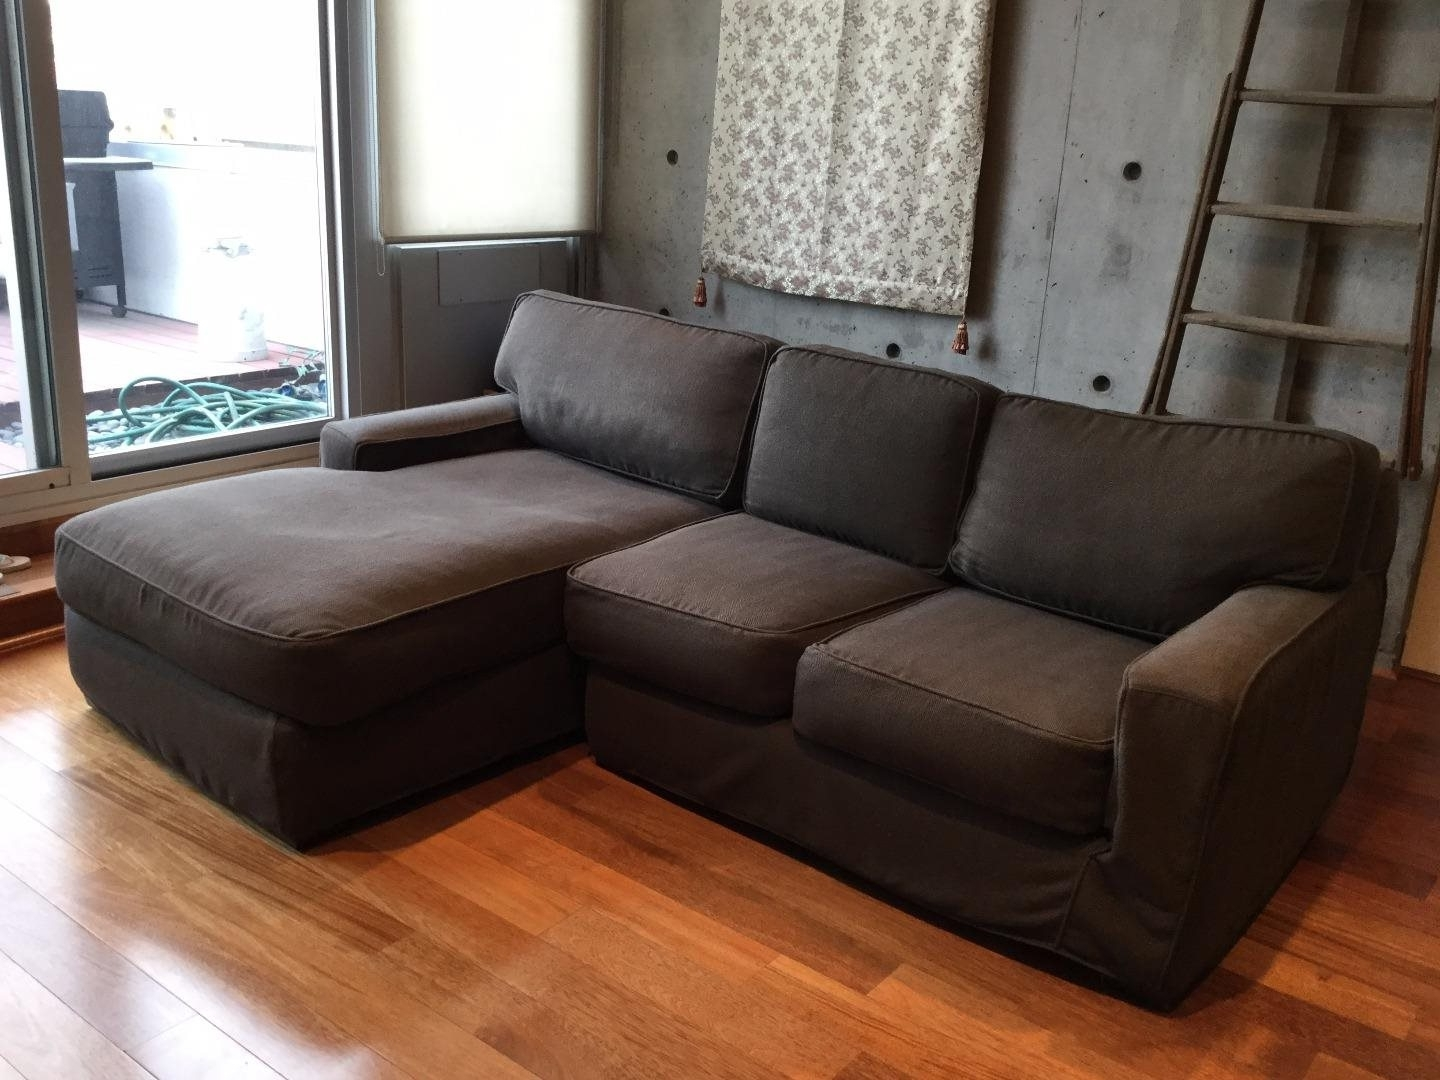 Well Liked Quatrine Upholstered Sectional Sofa: For Sale In San Francisco, Ca Regarding Quatrine Sectional Sofas (View 6 of 15)